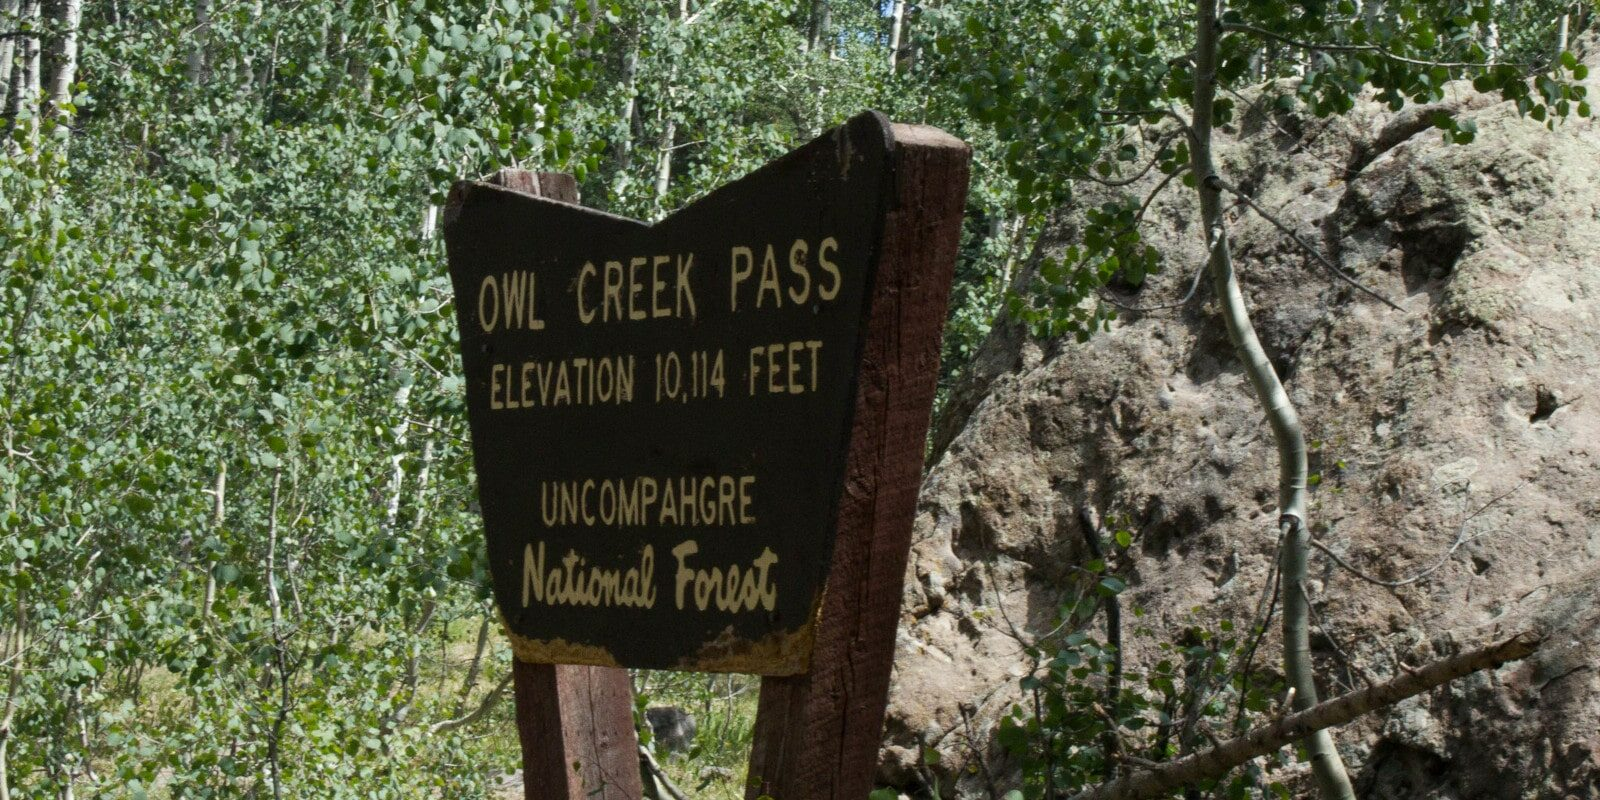 Image of the sign at Owl Creek Pass in Ridgway, Colorado